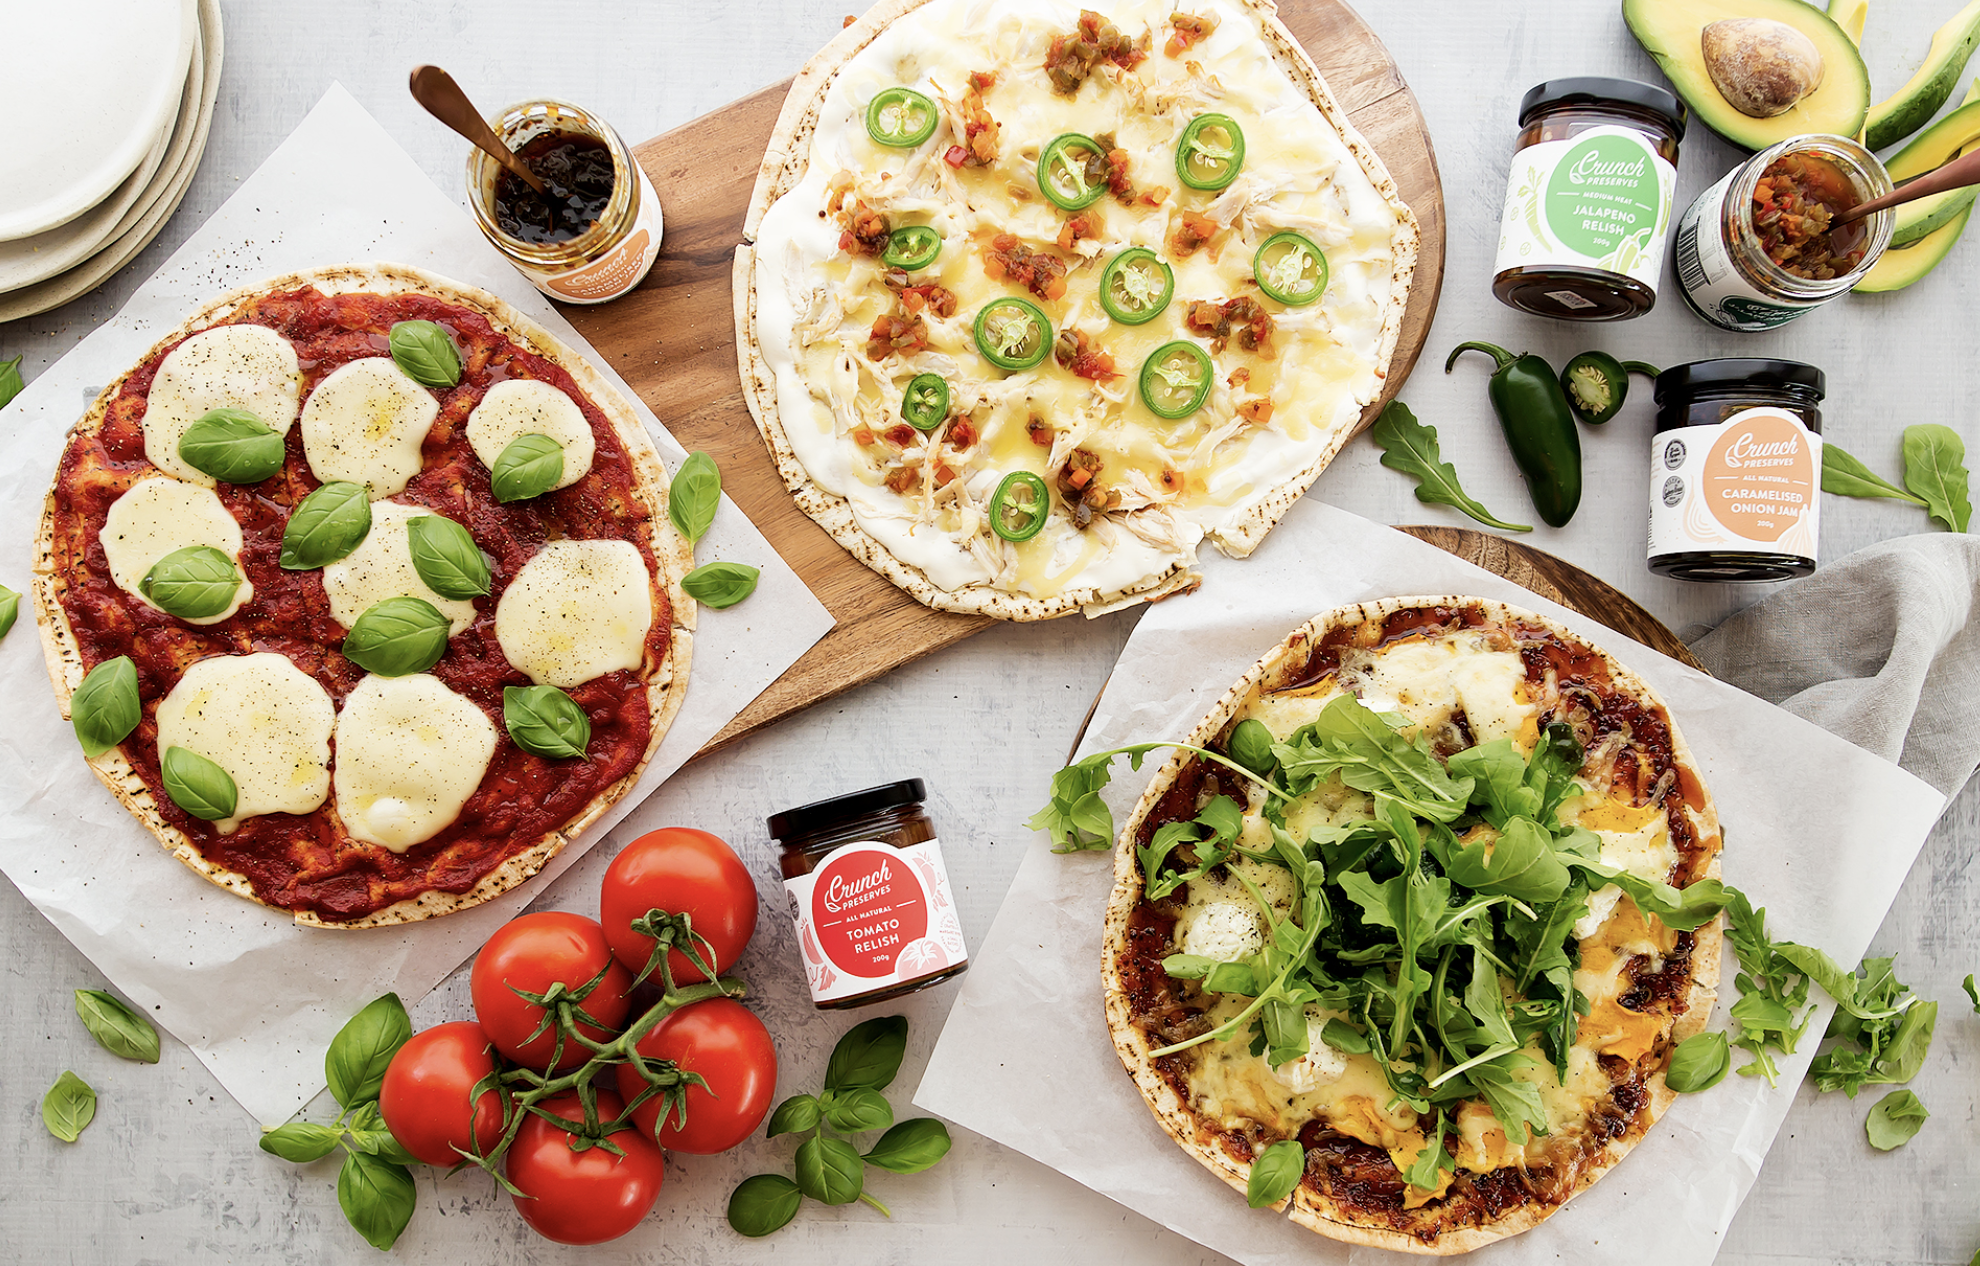 Crunch Preserves 3 Easy Gourmet Pizza Recipes:  Chicken & Jalapeno Relish with White Sauce  Tomato Relish with Mozzarella & Basil  Pumpkin, Caramelised Onion & Goat's Cheese